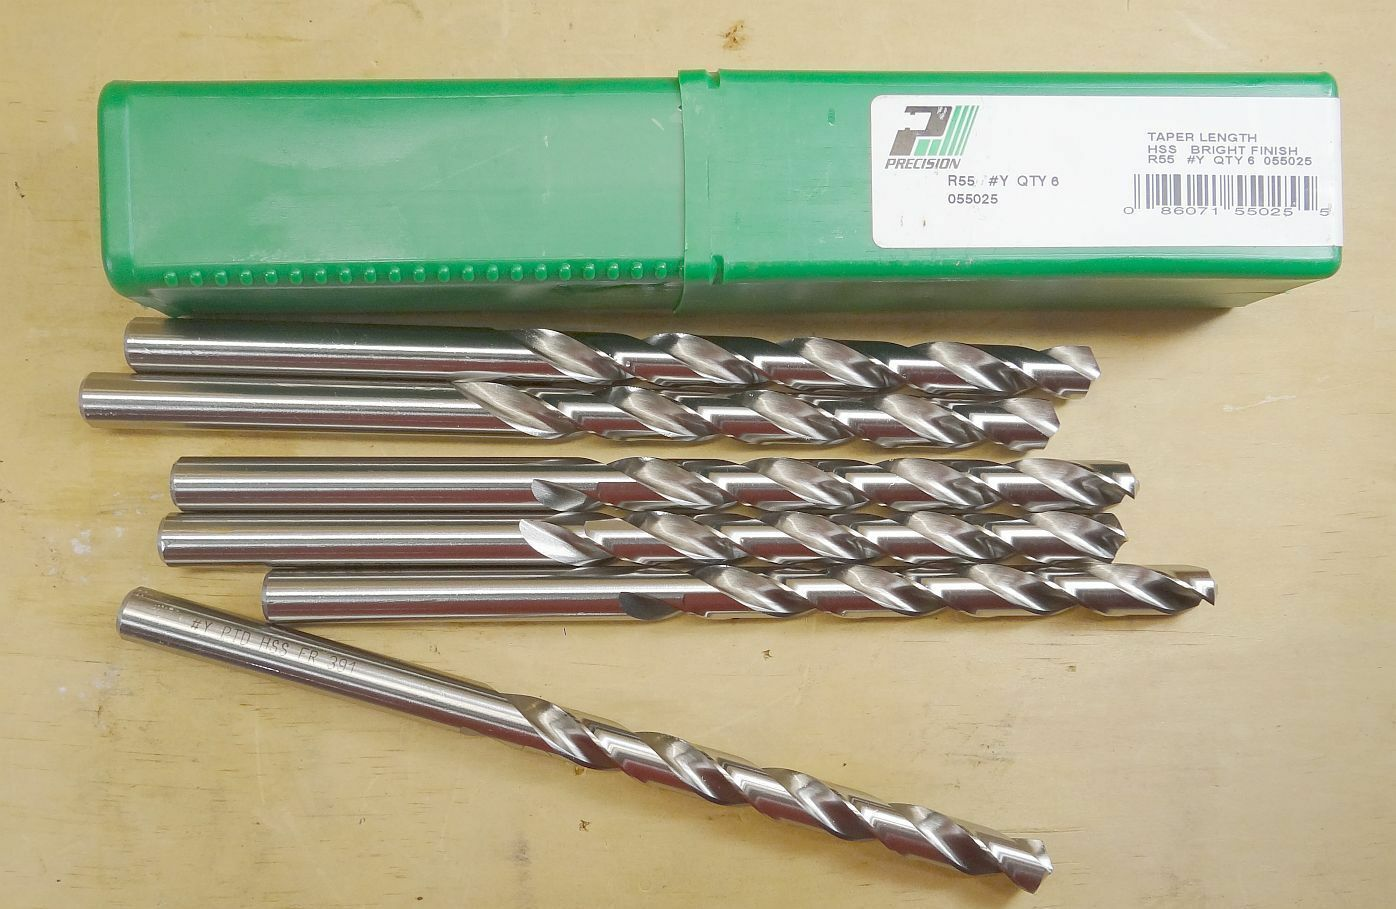 Primary image for 6 PRECISION TWIST DRILL 055025 R55 LTR Y 118' HSS PTD GP TAPER LENGTH DRILL BIT